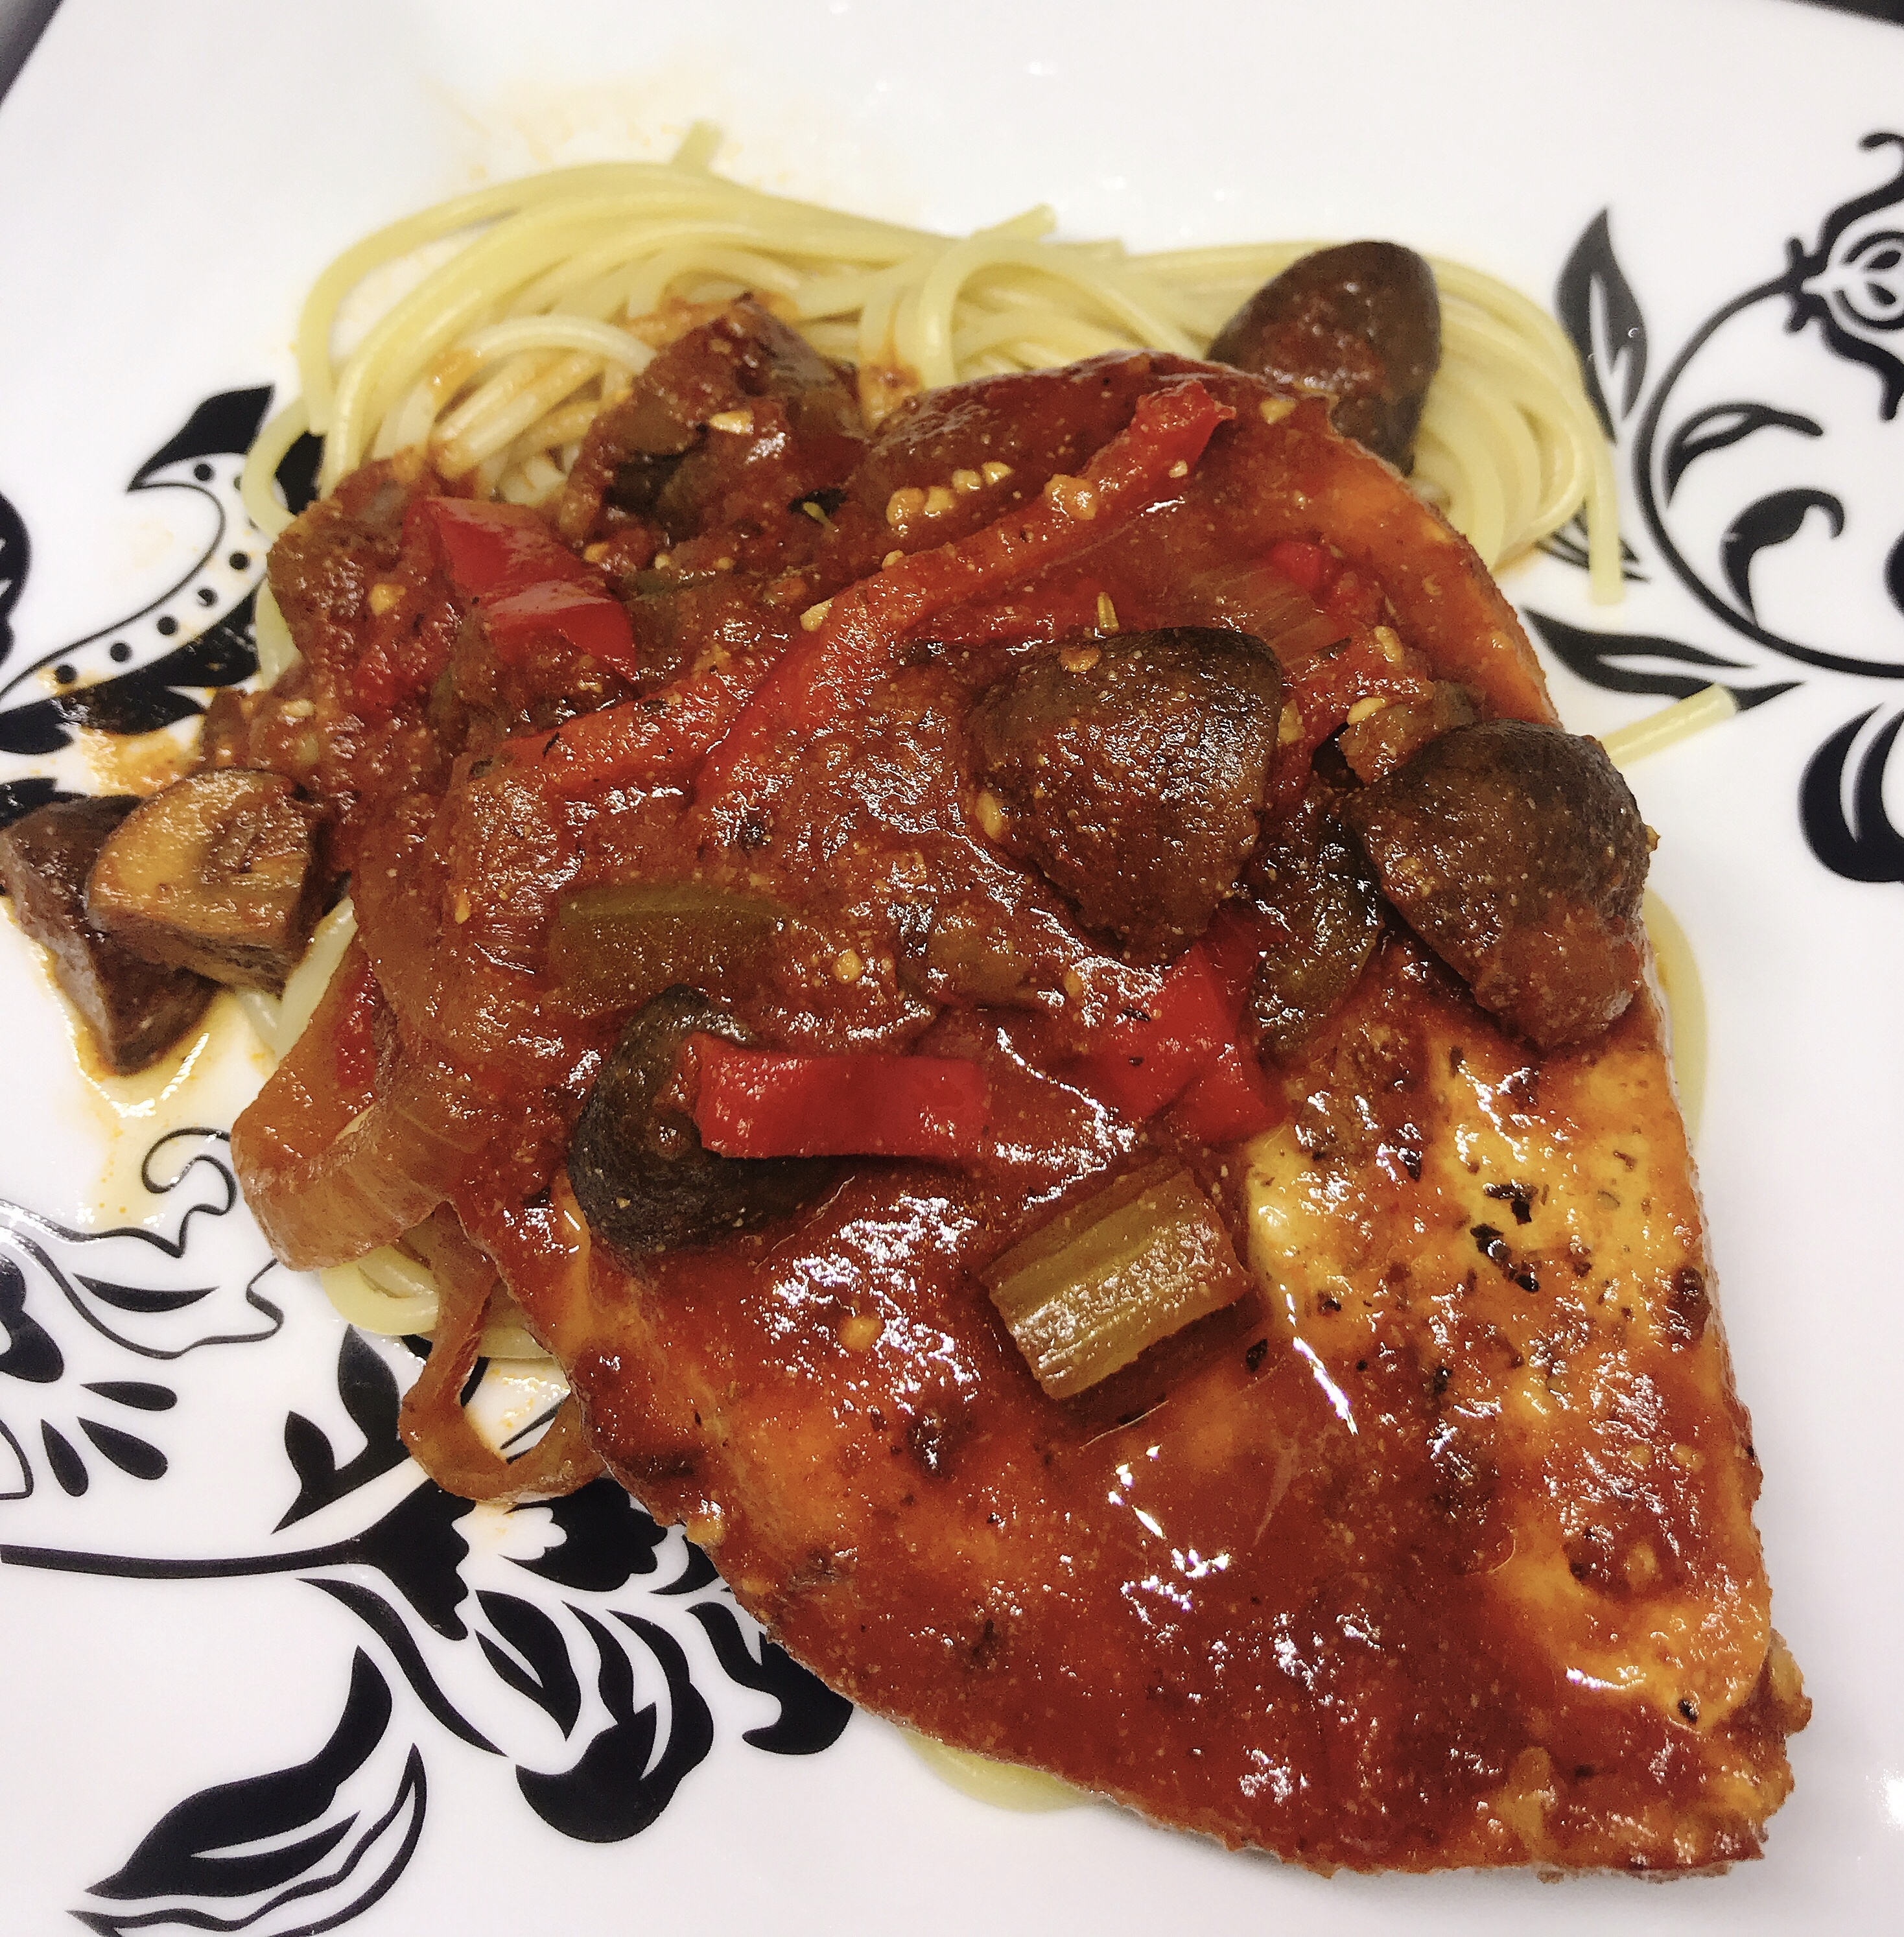 """An Instant Pot chicken cacciatore with mushrooms, green and red bell peppers, red wine, tomato paste, and Italian seasonings. """"A little work up front, barely any cooking time, amazing outcome,"""" says Shelly Exel-Miles. """"Serve this to guests and they will be amazed by your mad Instant Pot/pressure cooker skills. Serve by itself or over pasta or rice. Also can add a little freshly ground Parmesan cheese."""""""